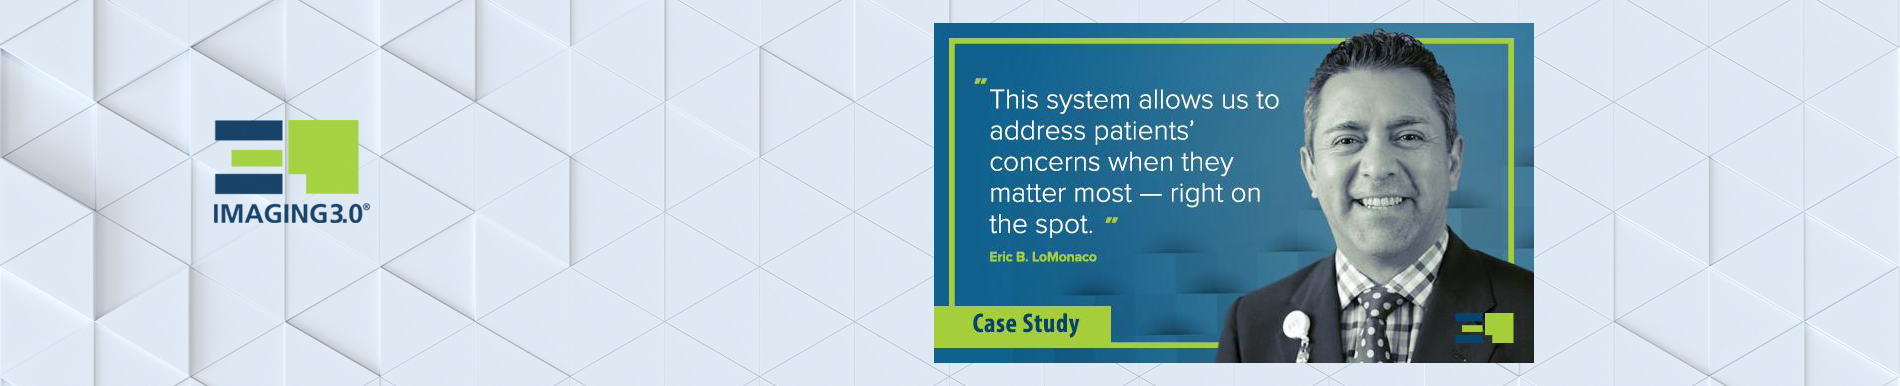 Imaging 3.0 Case Study: Patient Satisfaction